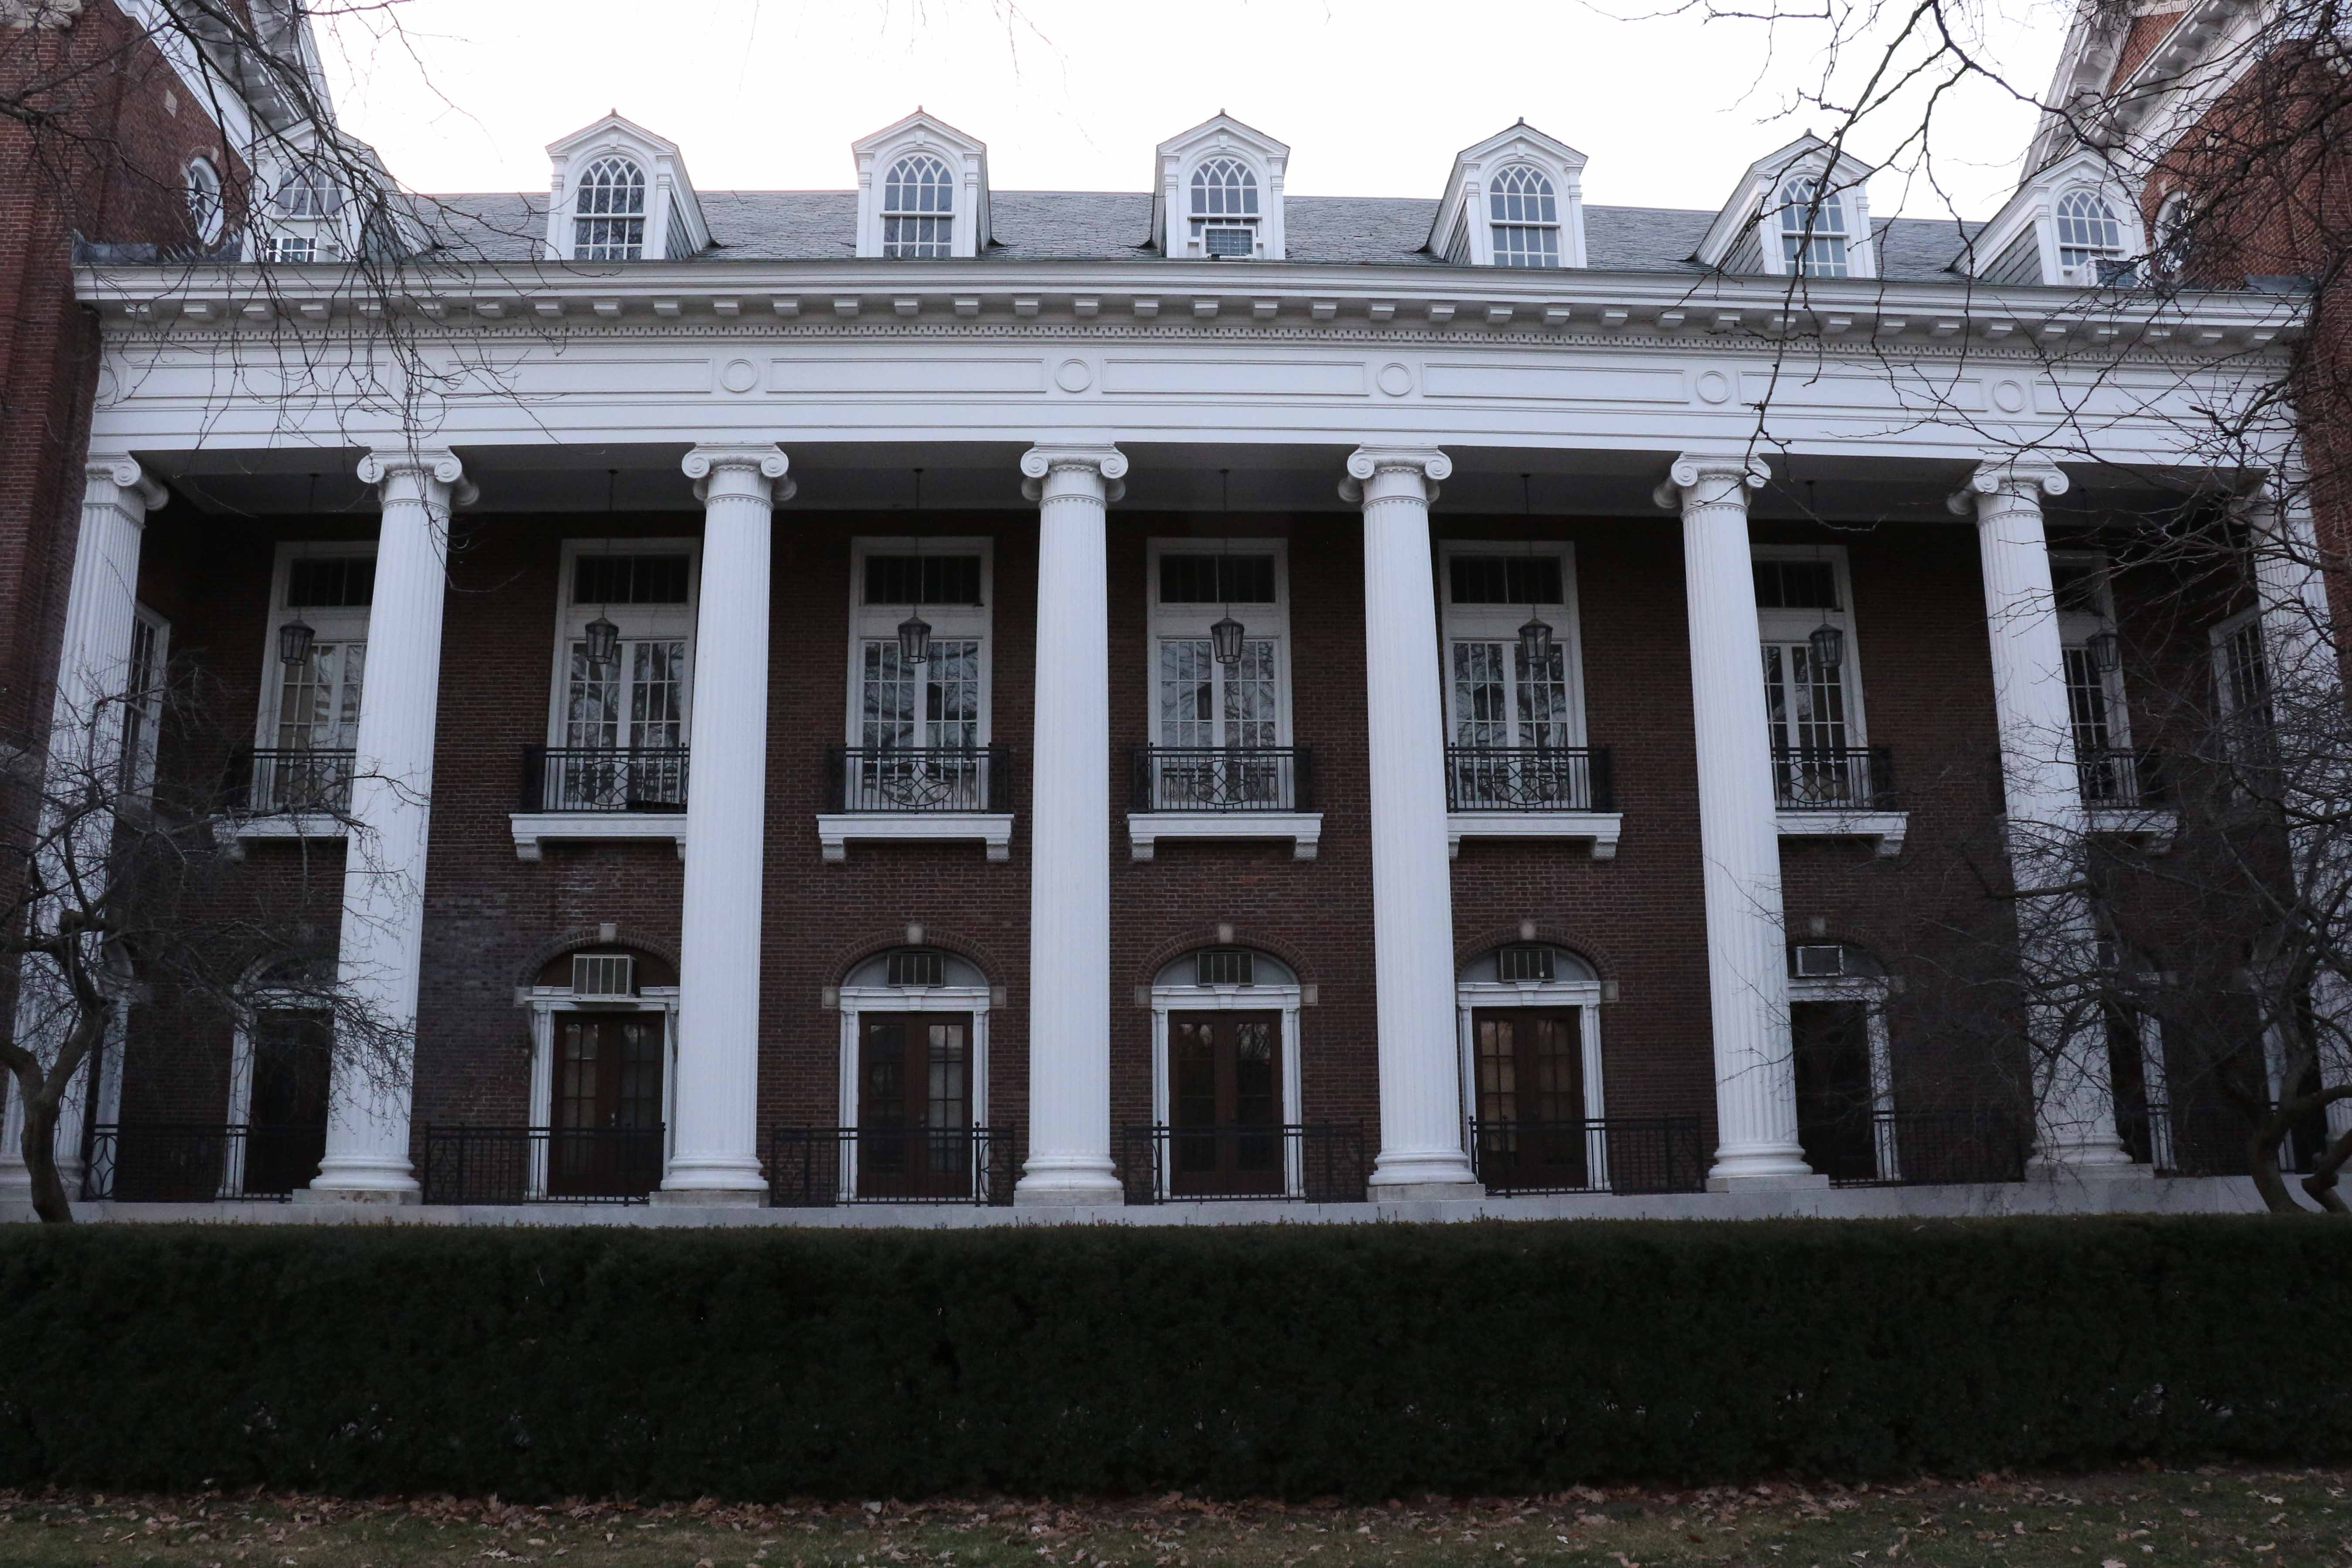 The English Building is the home to the department of English, which places 95 percent of students after graduation.